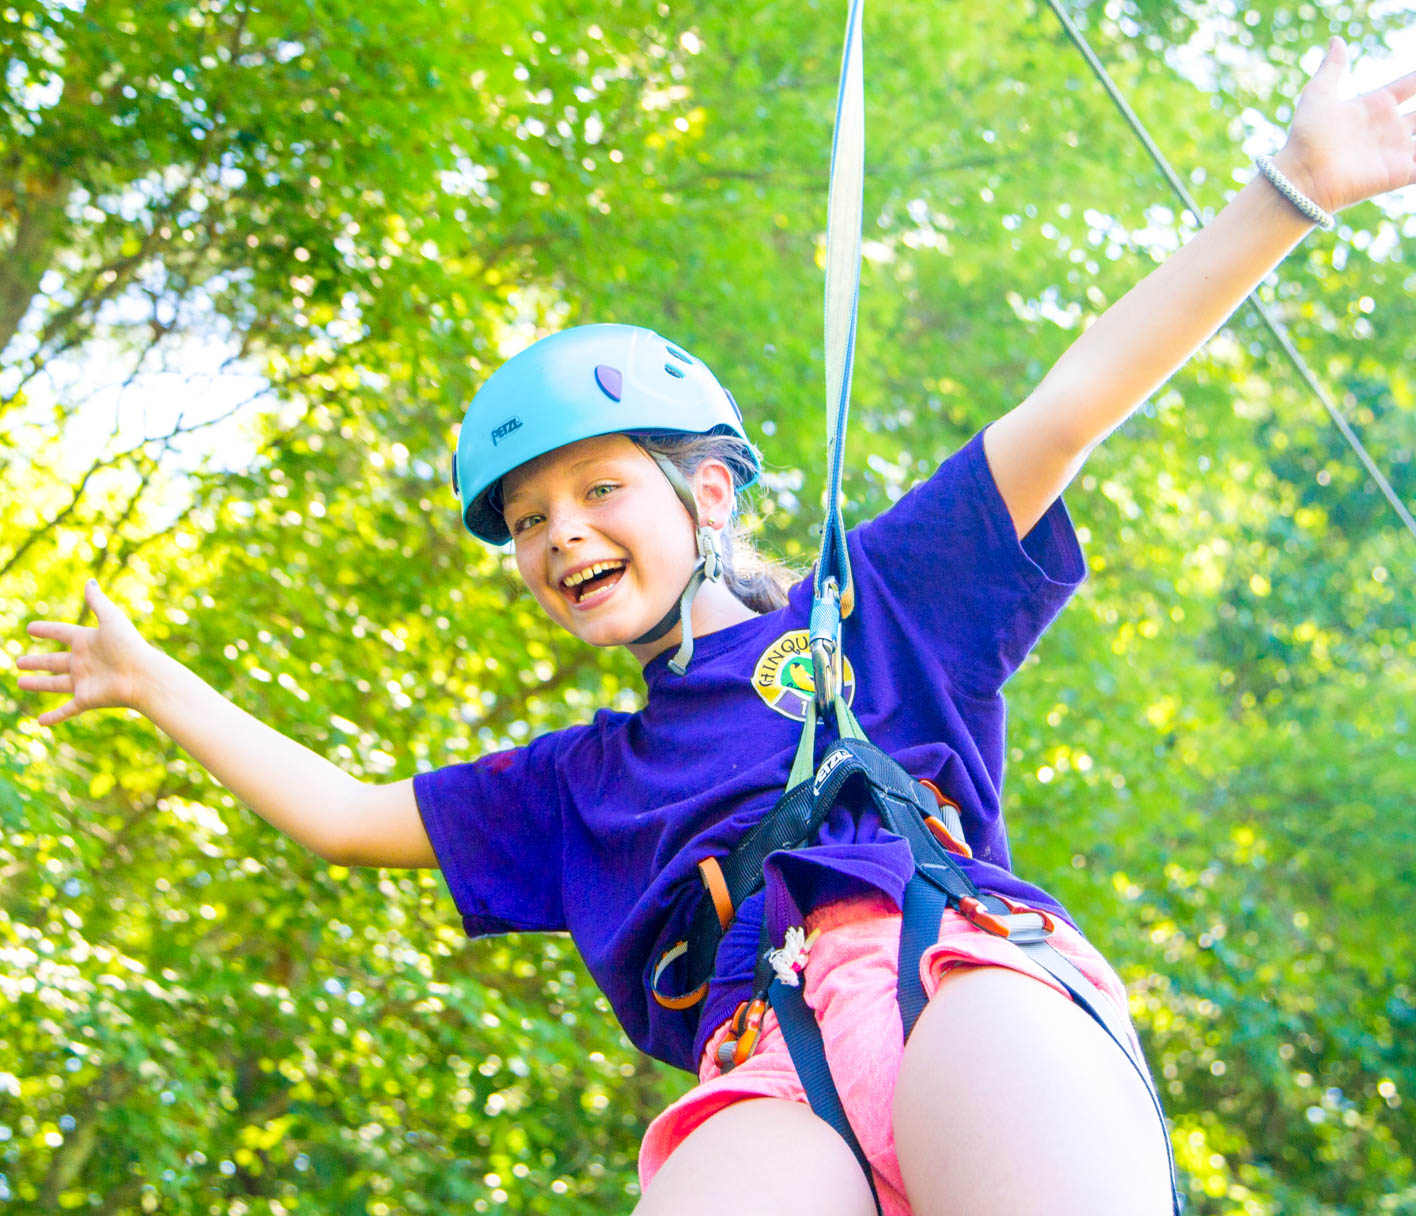 excited-girl-zip-line